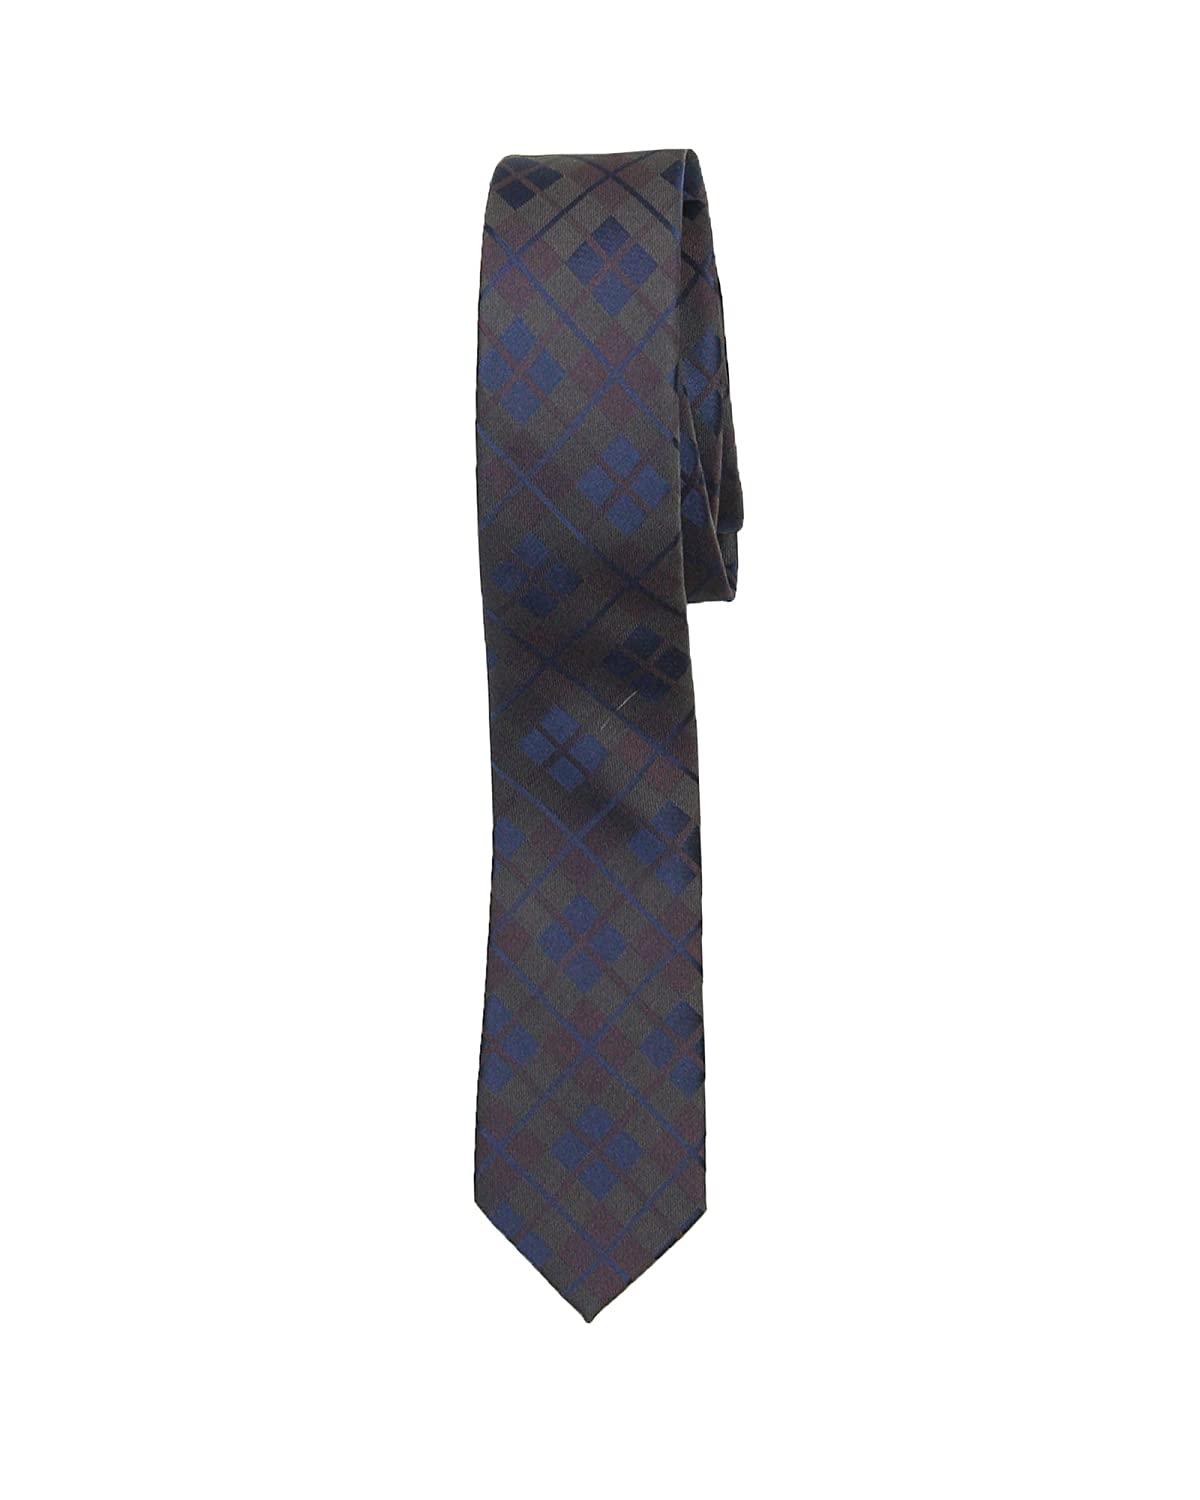 Mavezzano Boys Tie in Brown Plaid